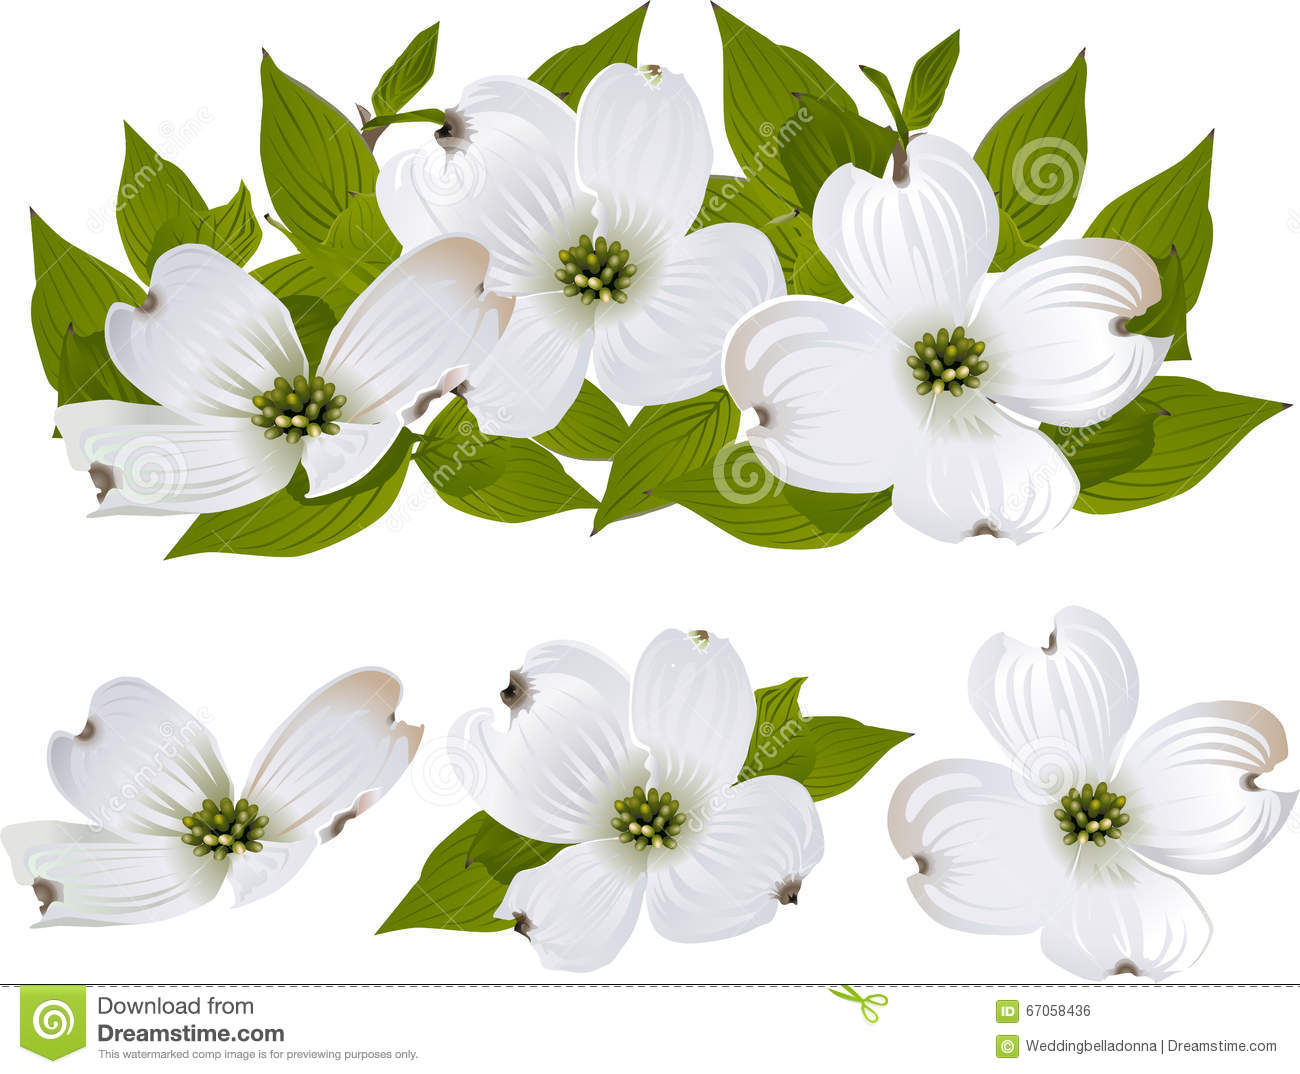 Dogwood clipart #20, Download drawings